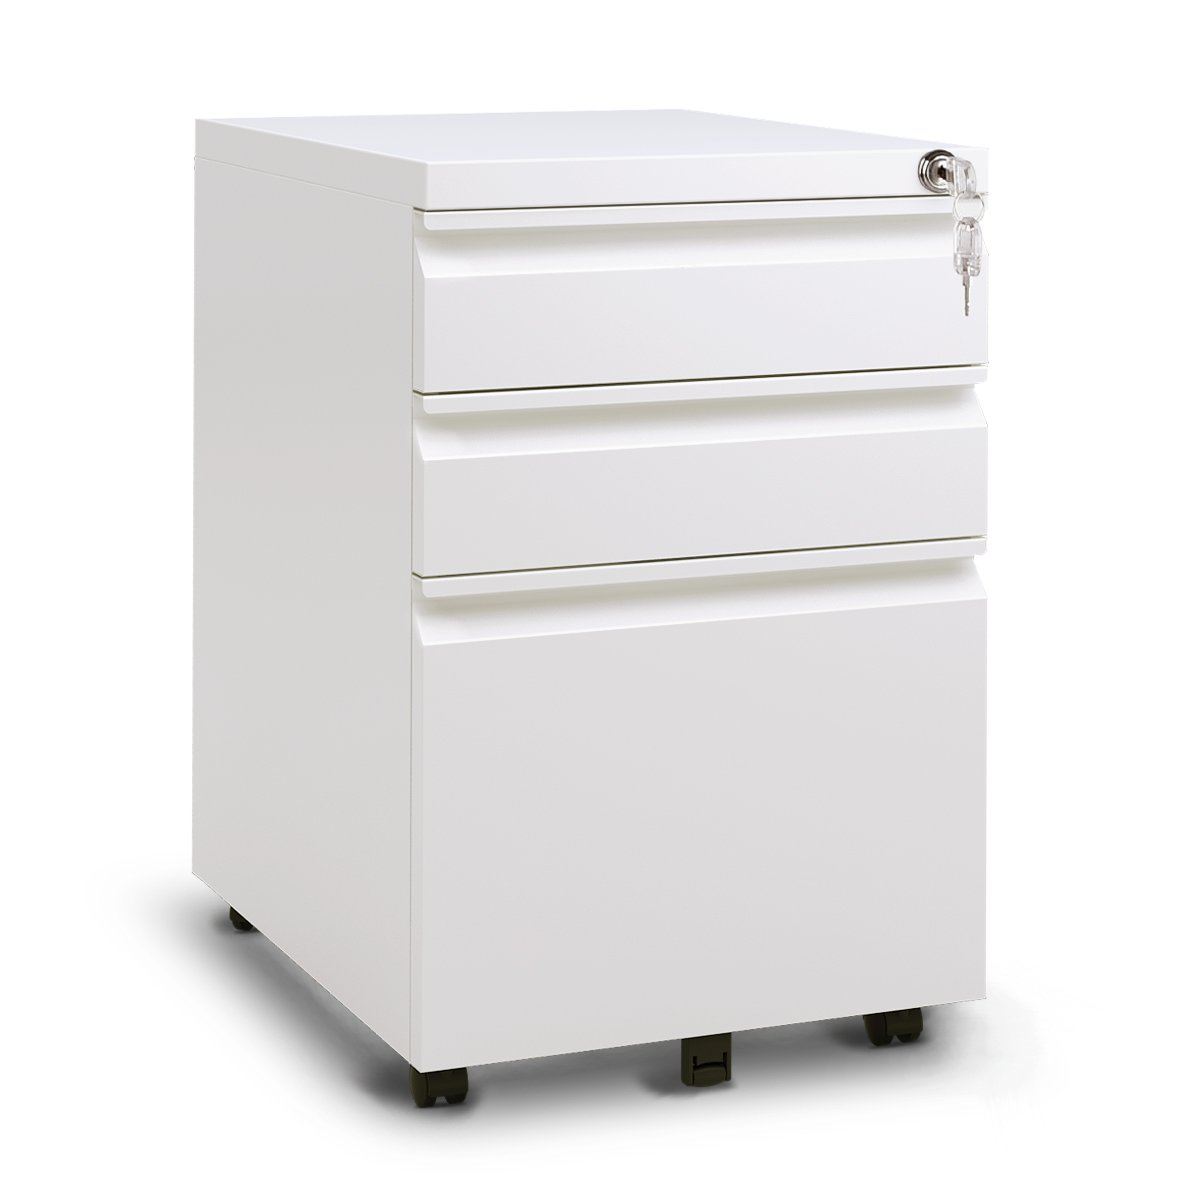 DEVAISE 3 Drawer Metal File Cabinet with Lock in White/Black(15.4'' W x 19.7'' D x 23.6'' H)(New Style-White)